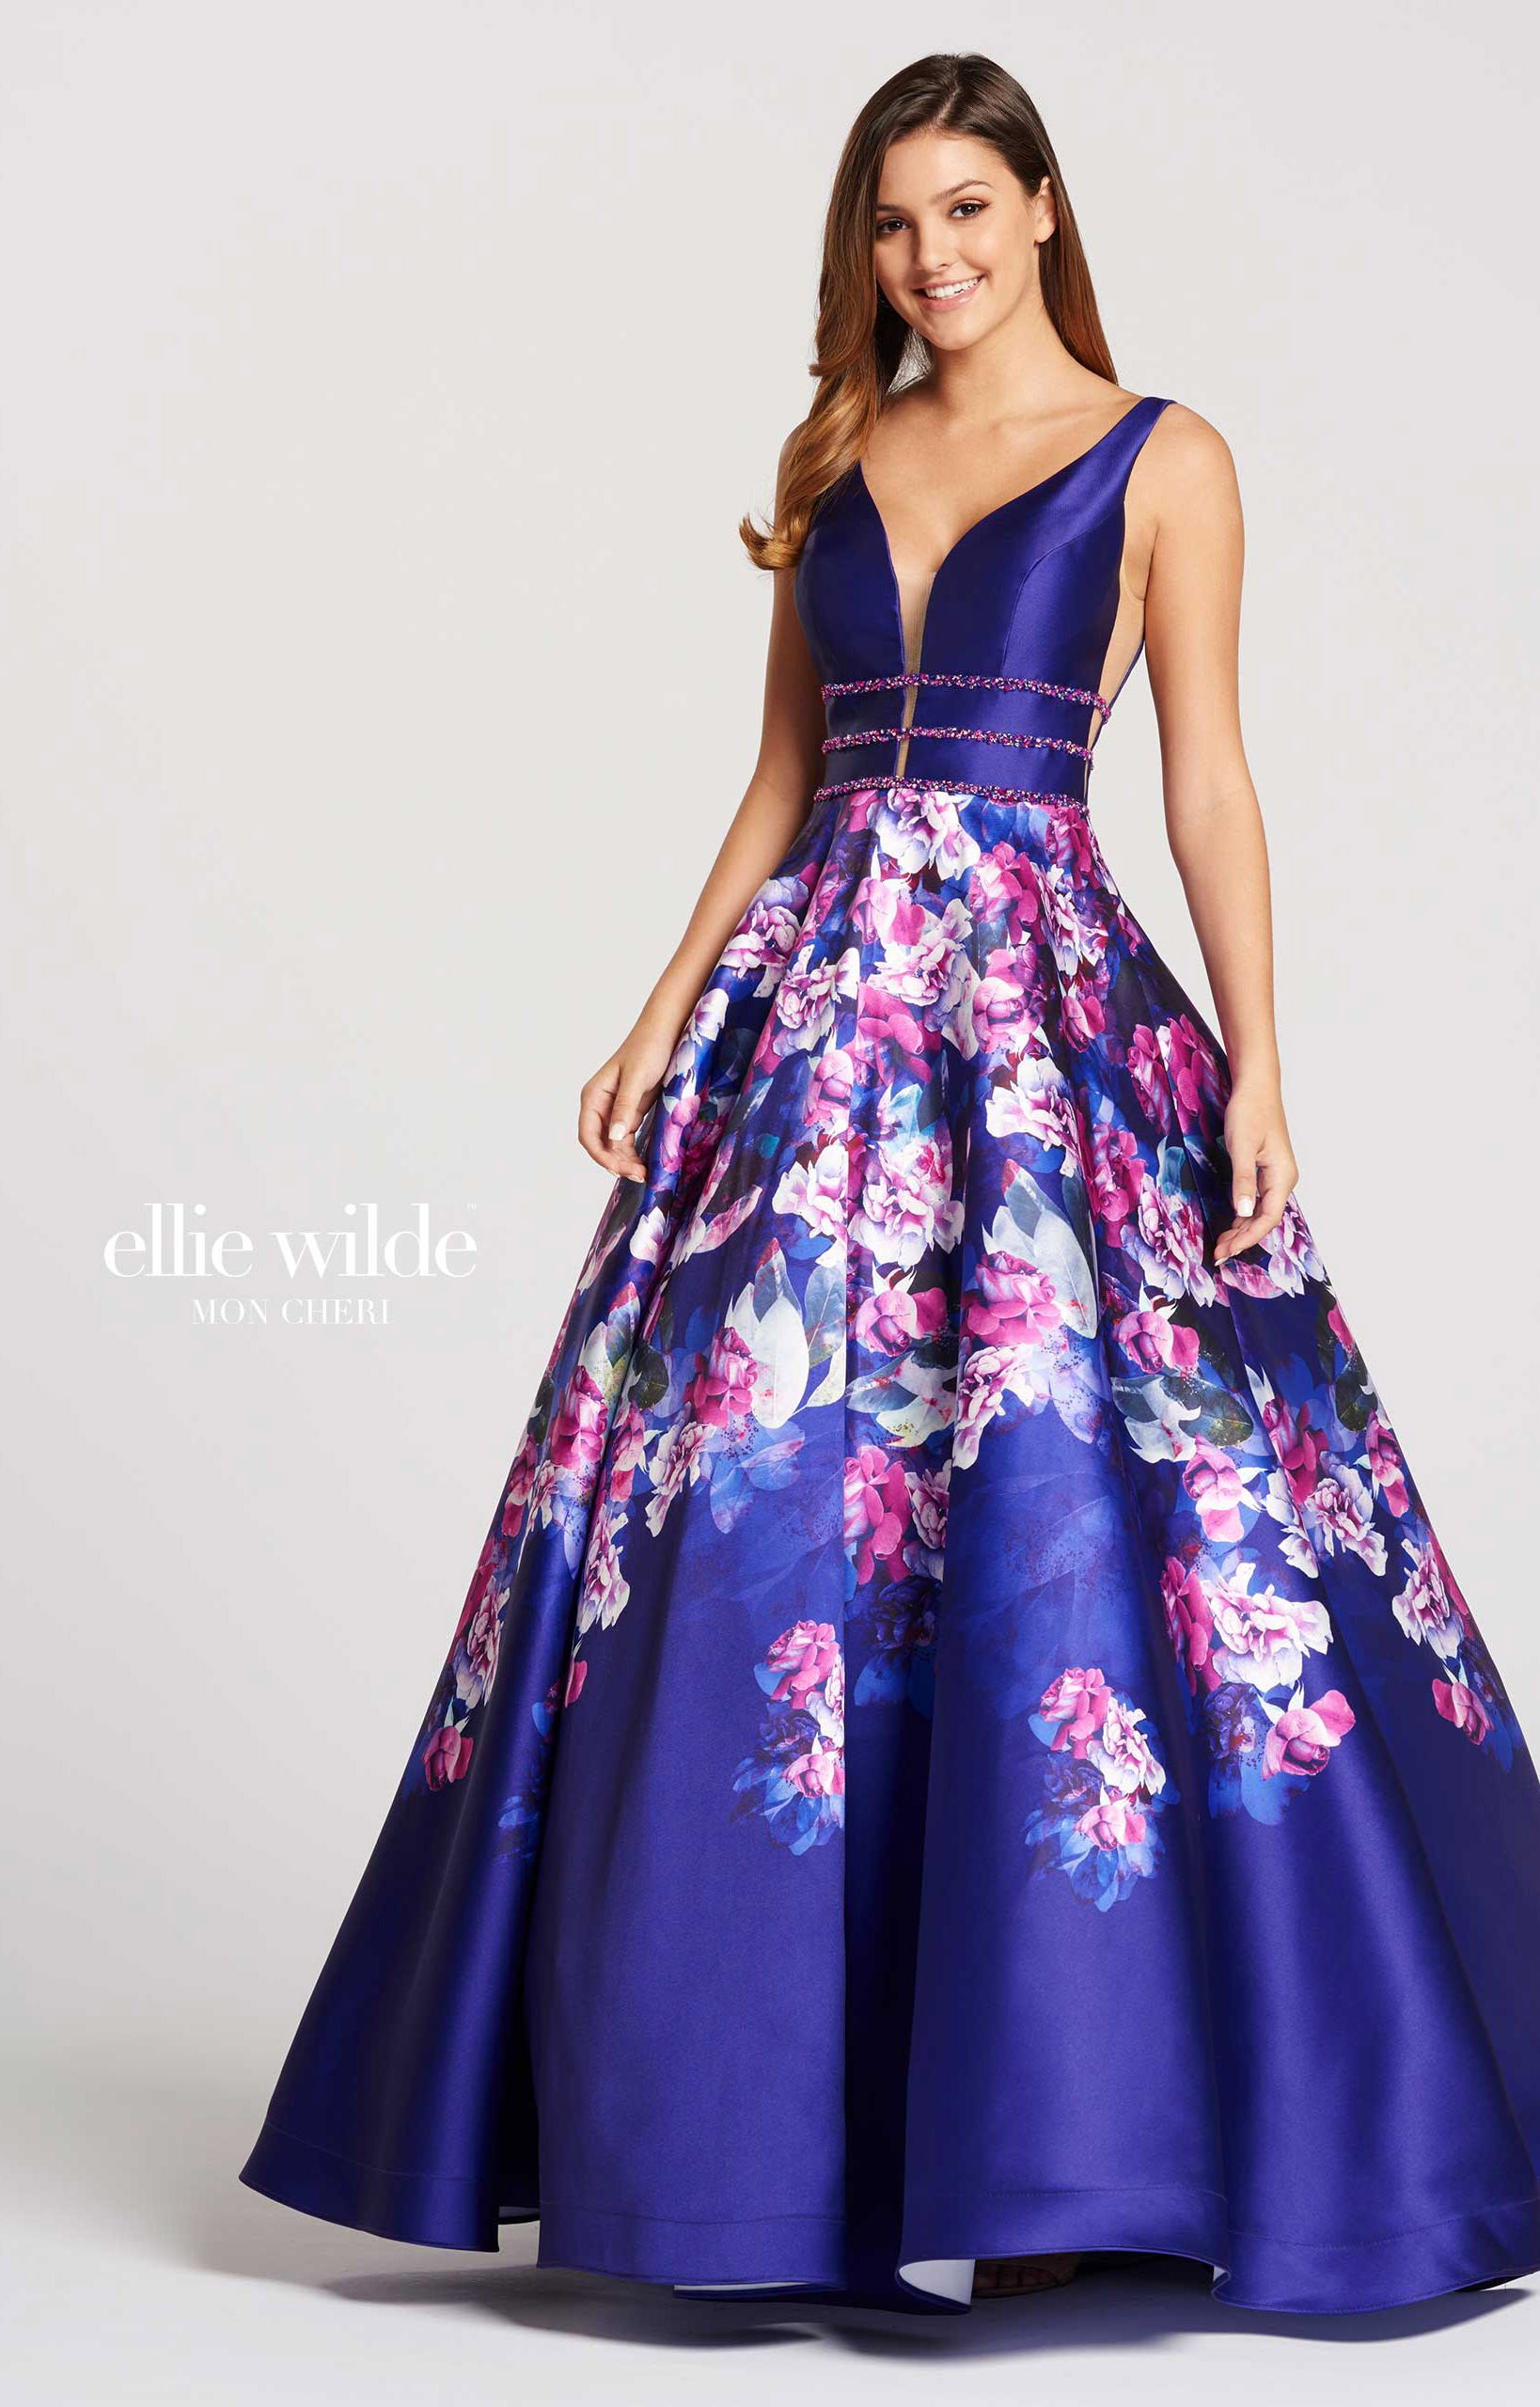 ellie wilde ew118006 aline printed mikado vneck prom dress